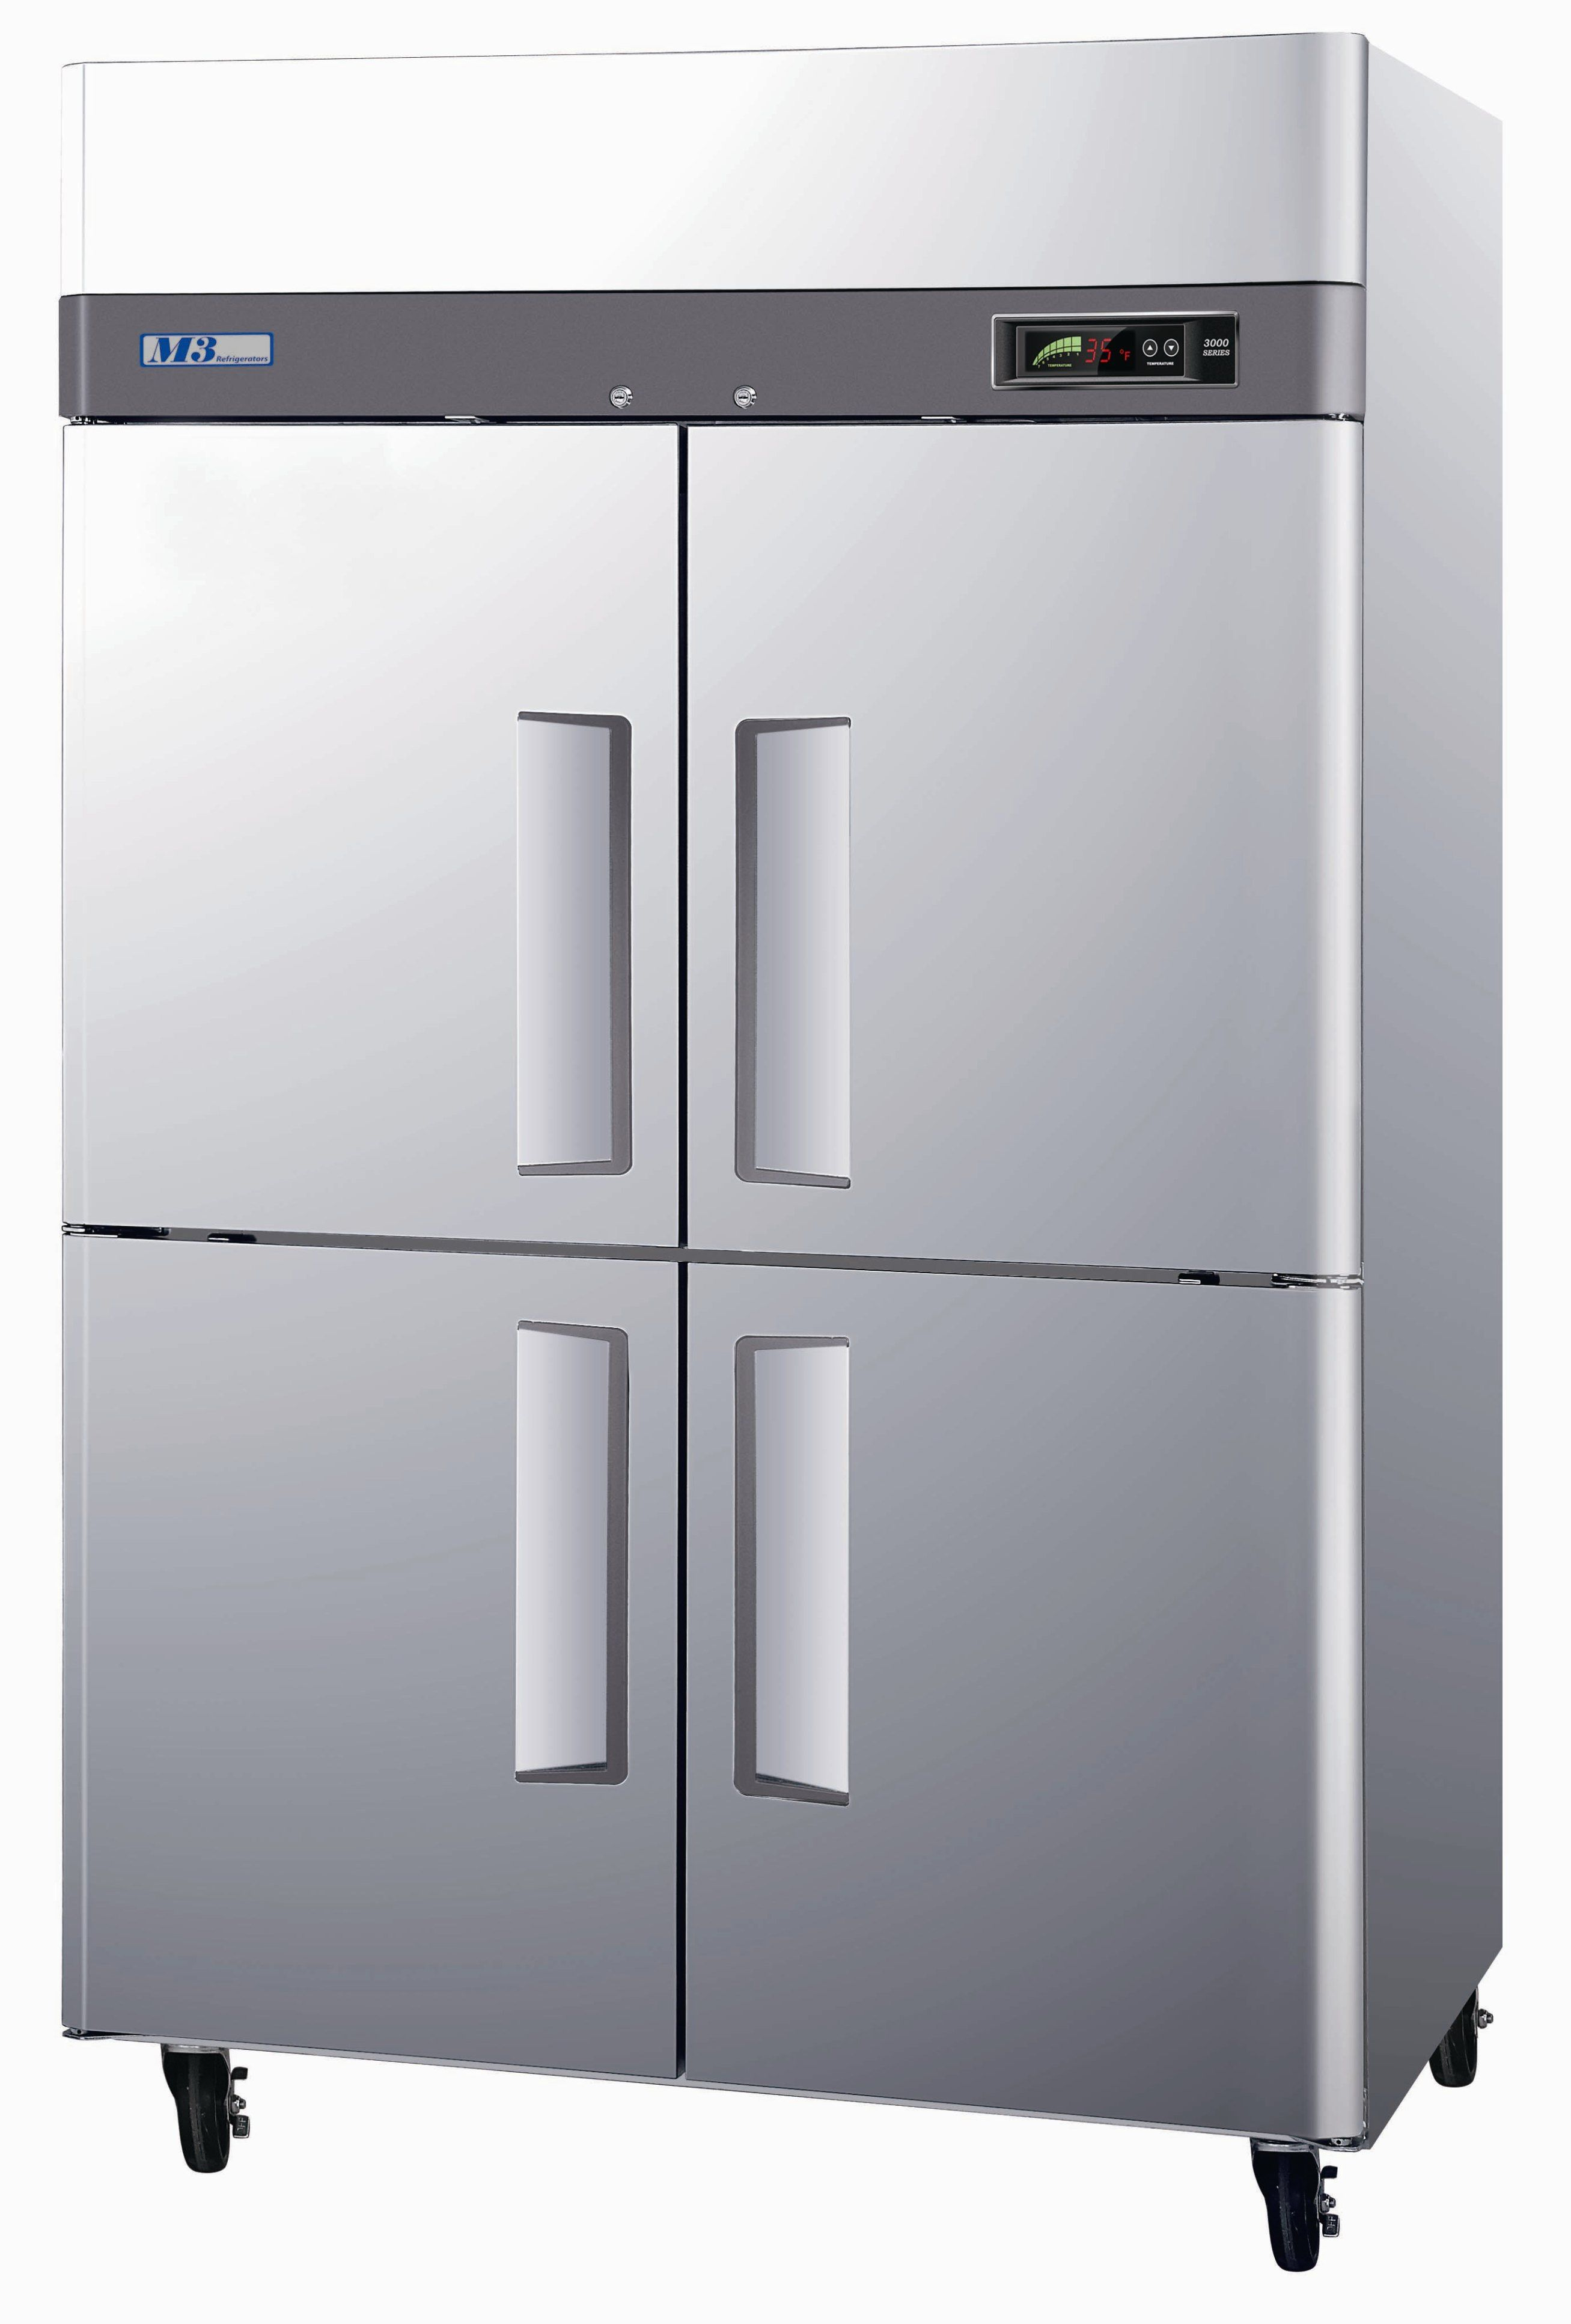 47 Cu. Ft ; 4 Doors Available for Freezer and